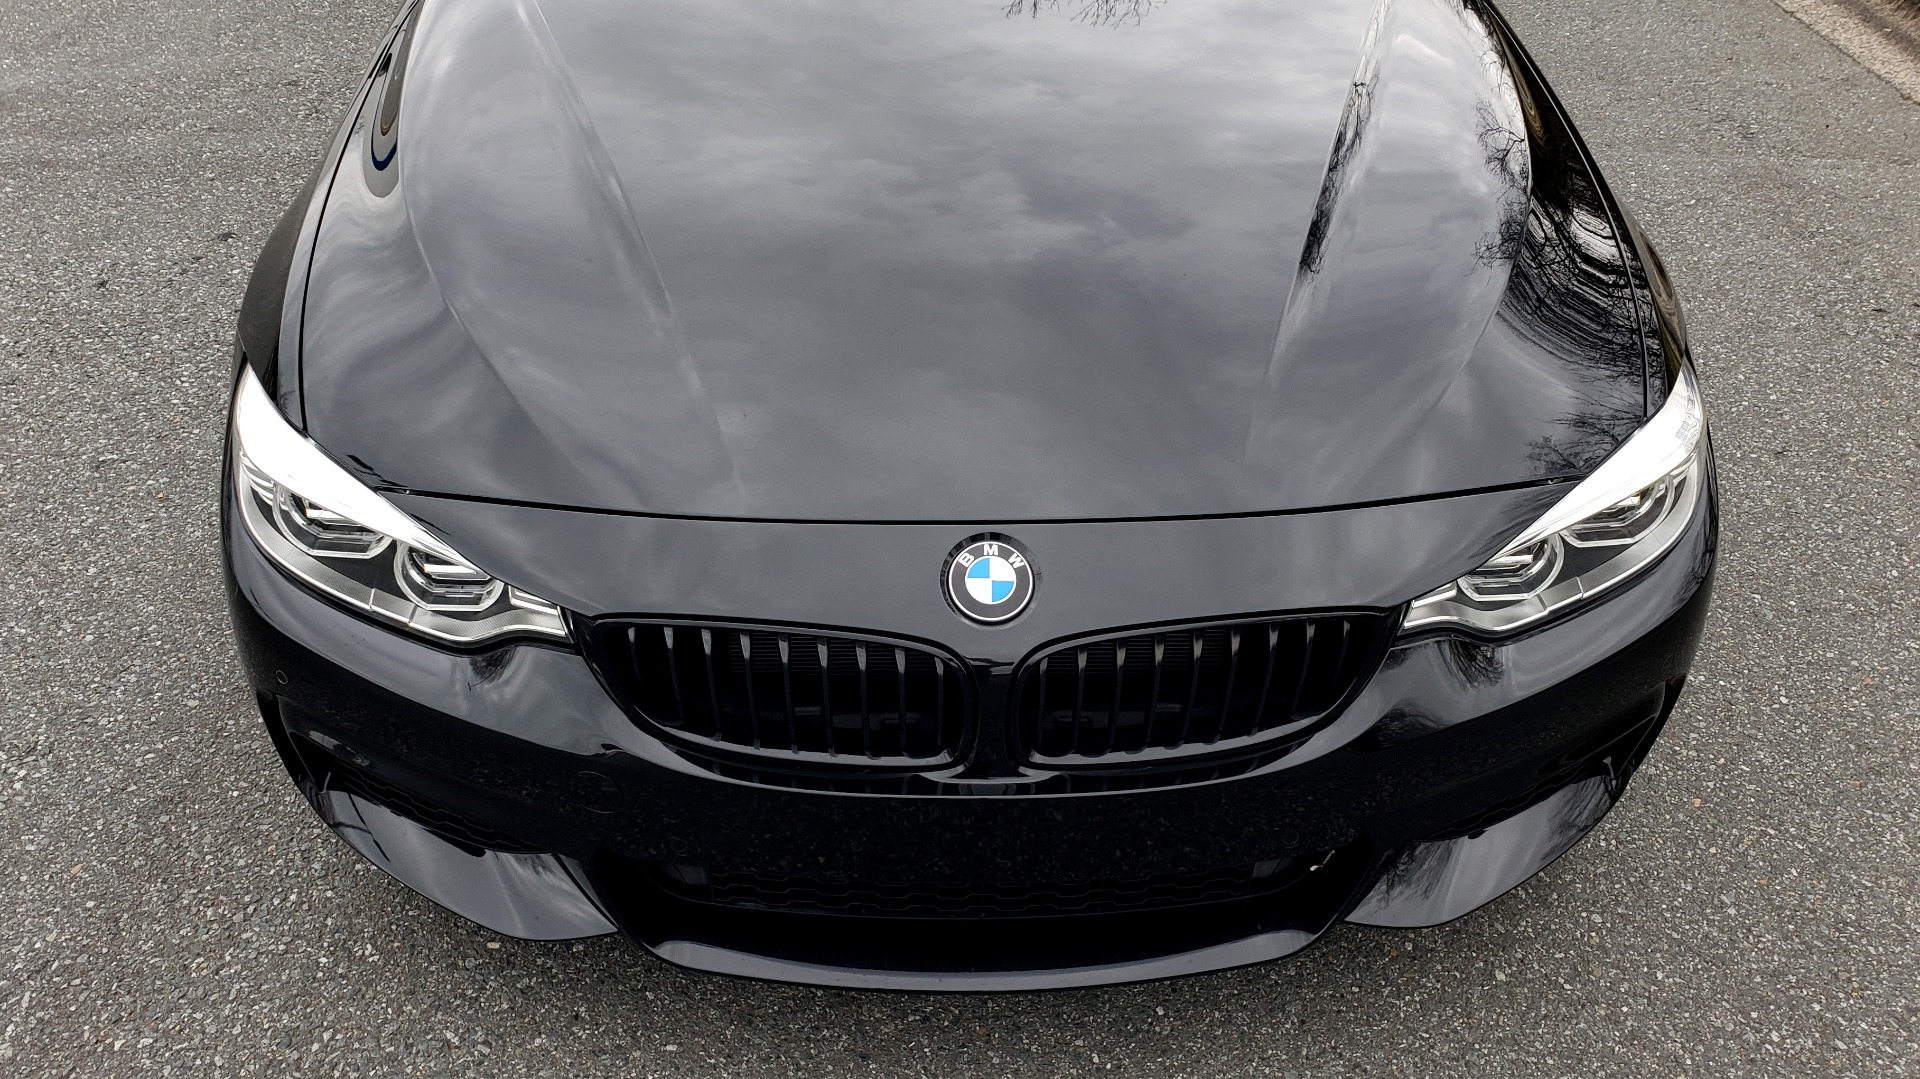 Used 2017 BMW 4 SERIES 440i M-SPORT / TECH / TRACK HANDLING / APPLE CAR PLAY for sale Sold at Formula Imports in Charlotte NC 28227 16